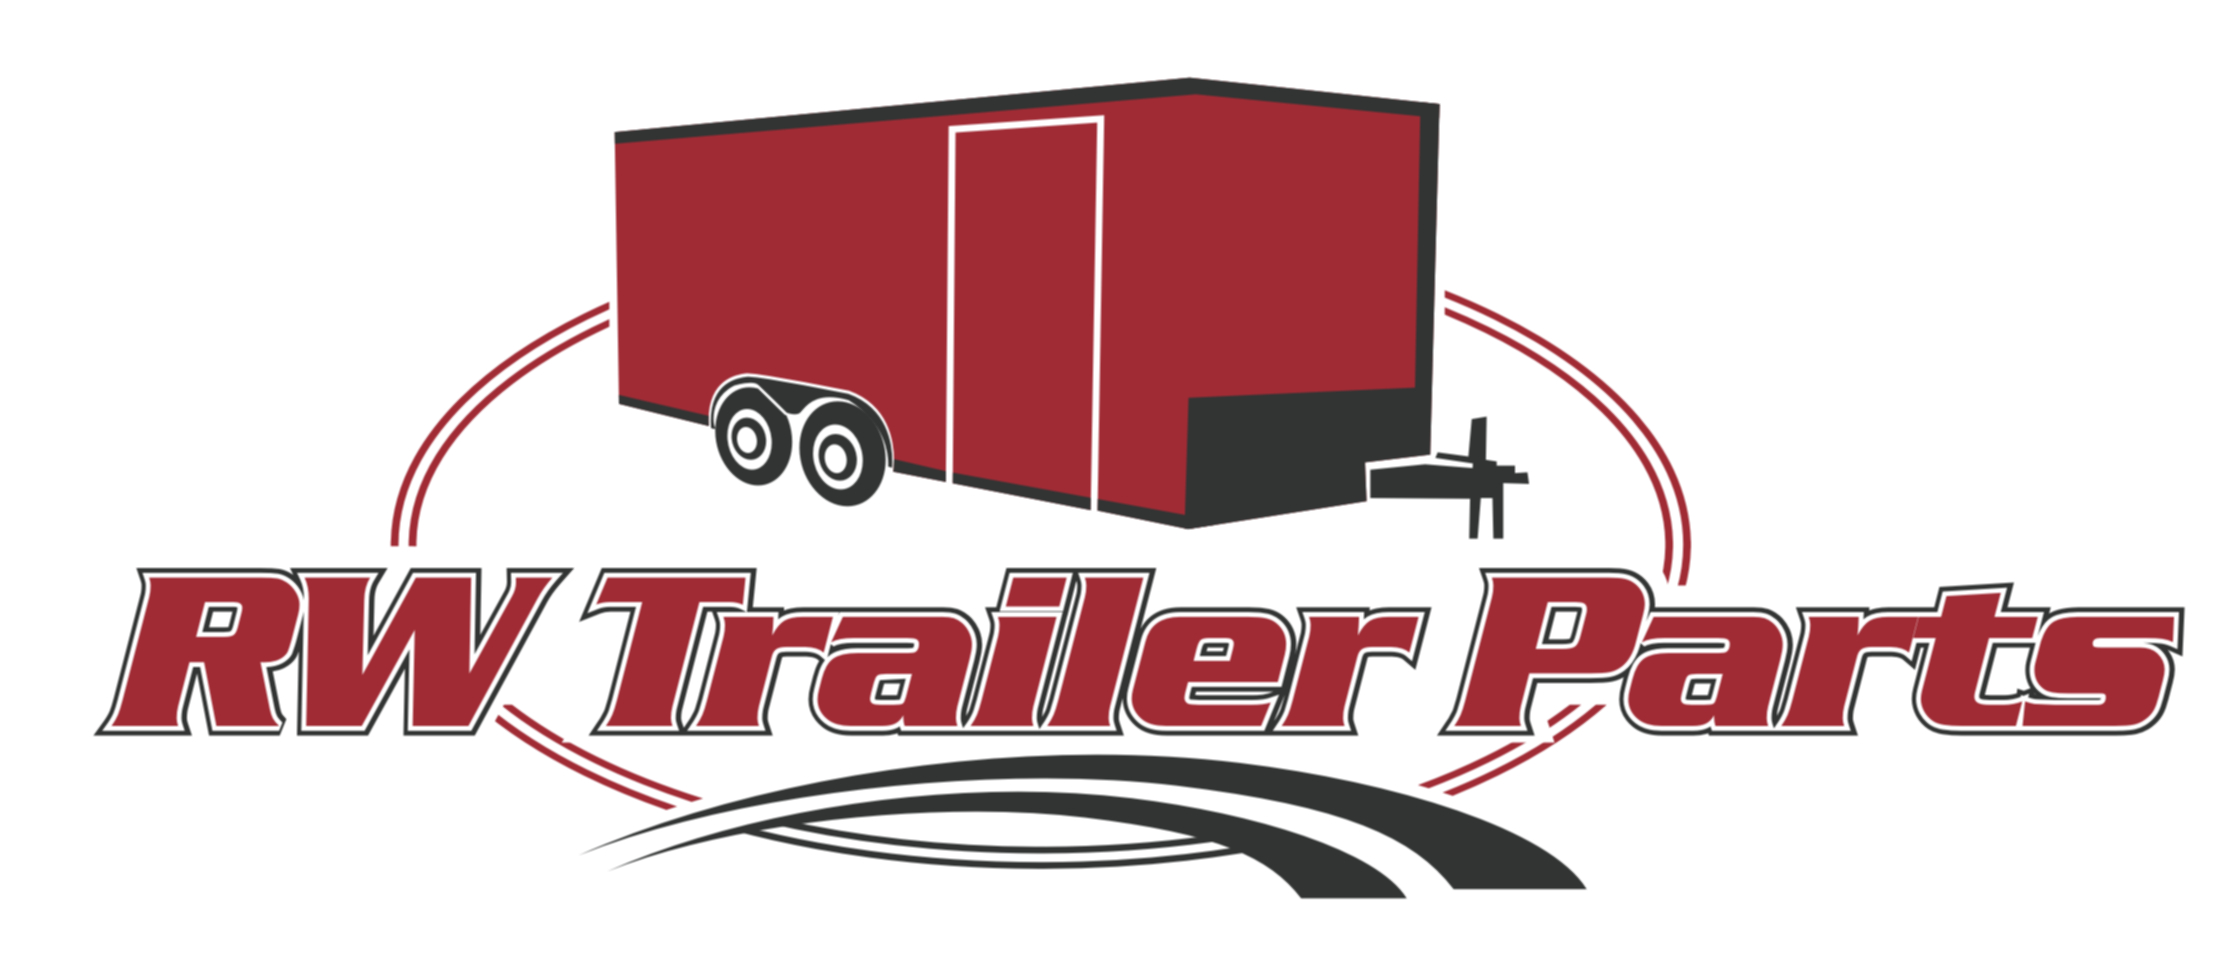 trailer light module fault baracuda pool cleaner parts diagram diagnosing and repairing lights wiring rwtrailerparts for